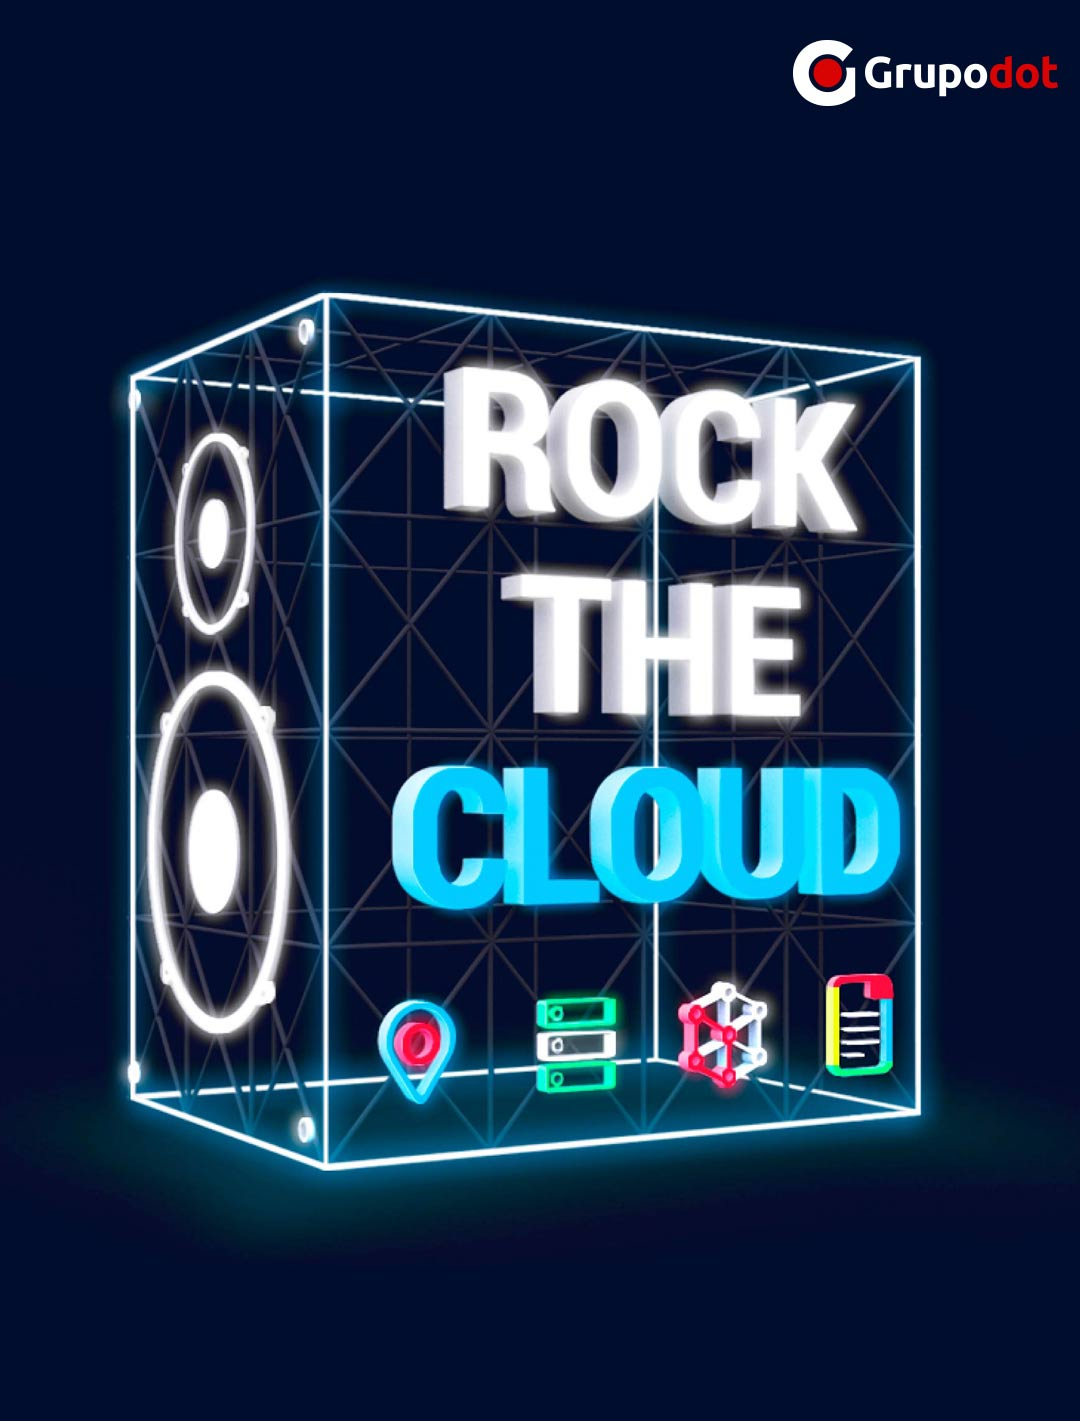 Evento Rock The Cloud looking forward 2020